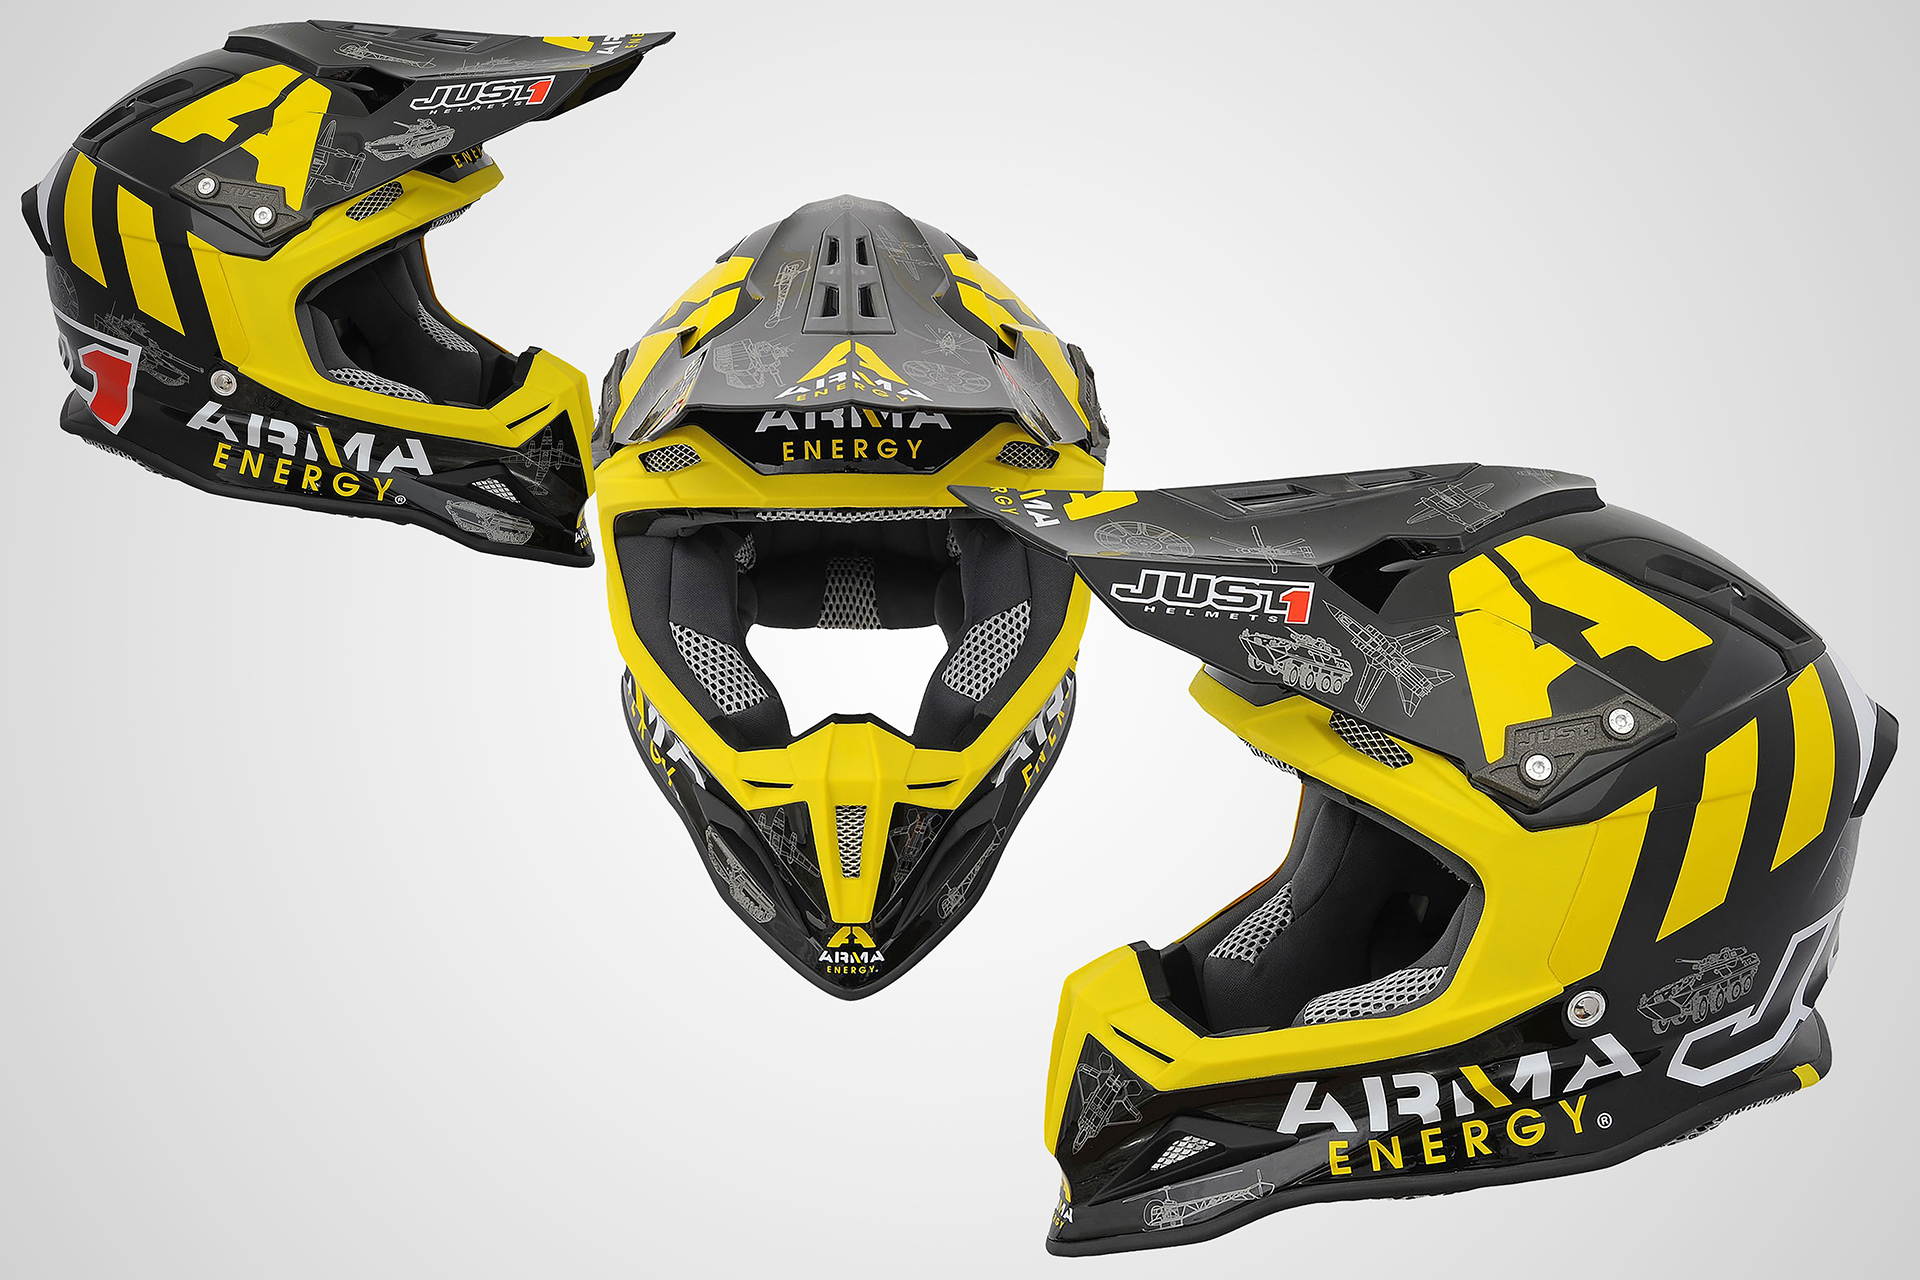 onafez design just one mx gear off-road arma energy helmets